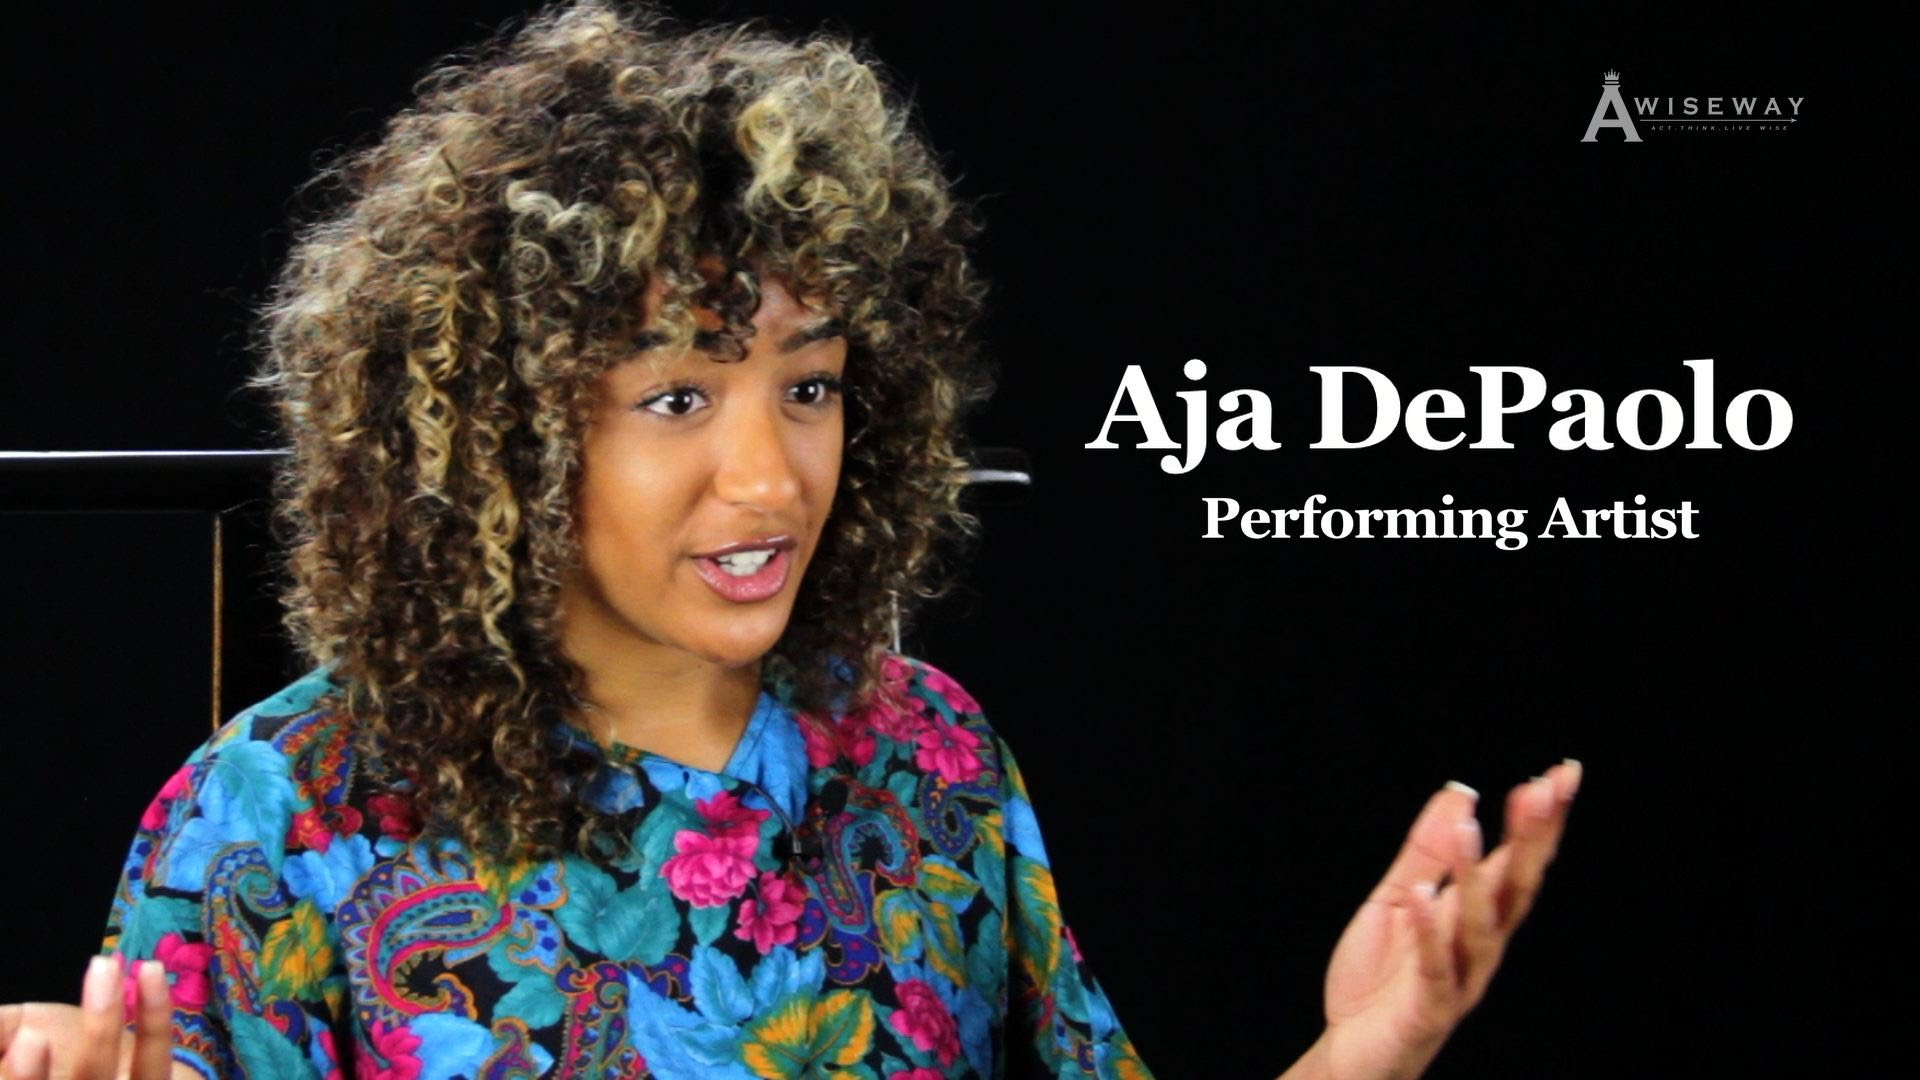 Performing Artist Explains Why Taking Your Craft Seriously Is Important